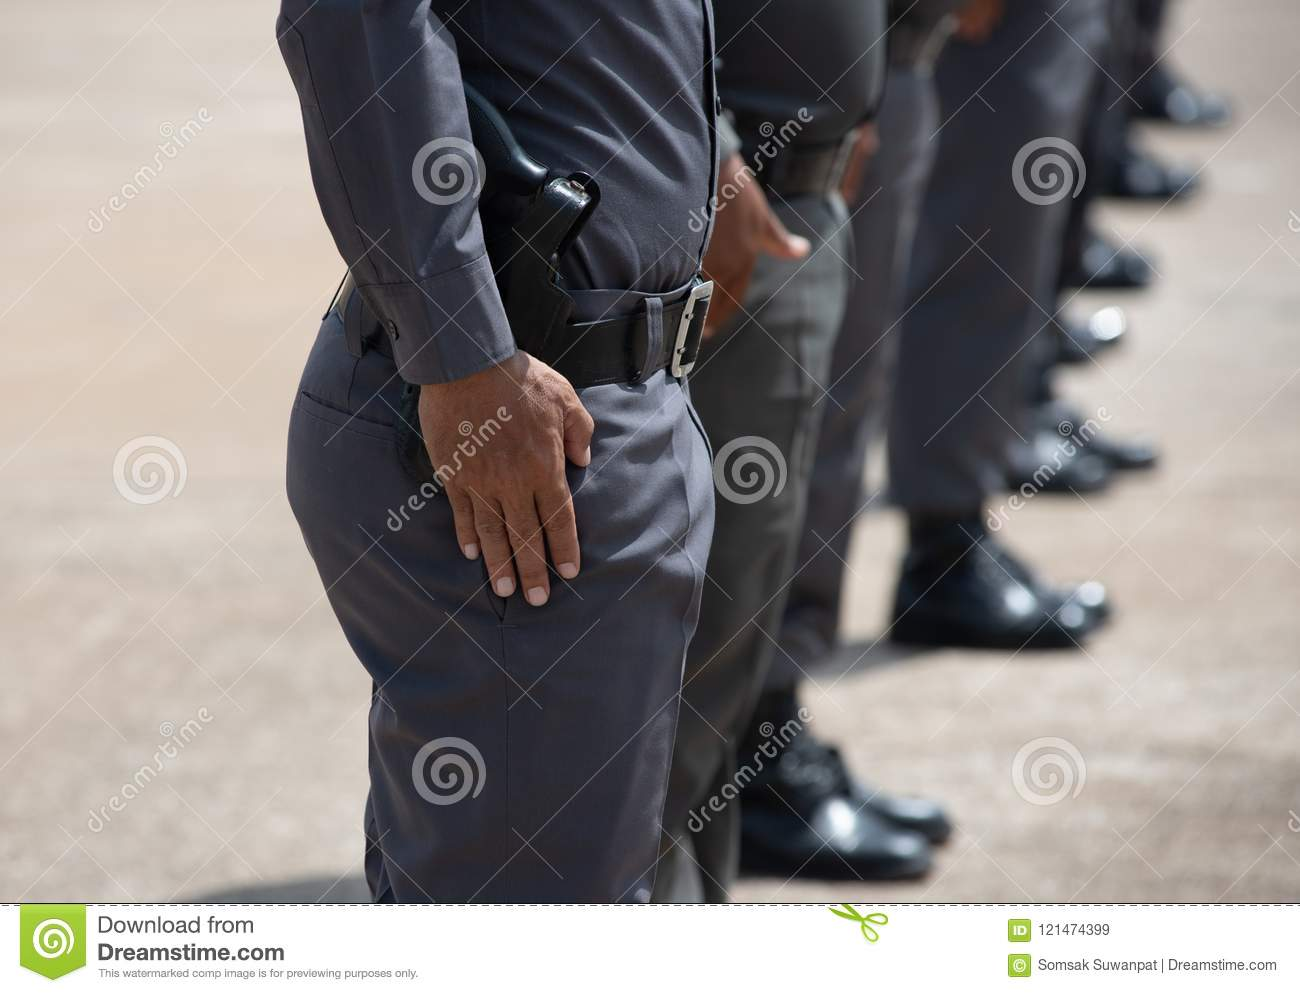 Police Tactical Firearms Training Stock Image - Image of practicing